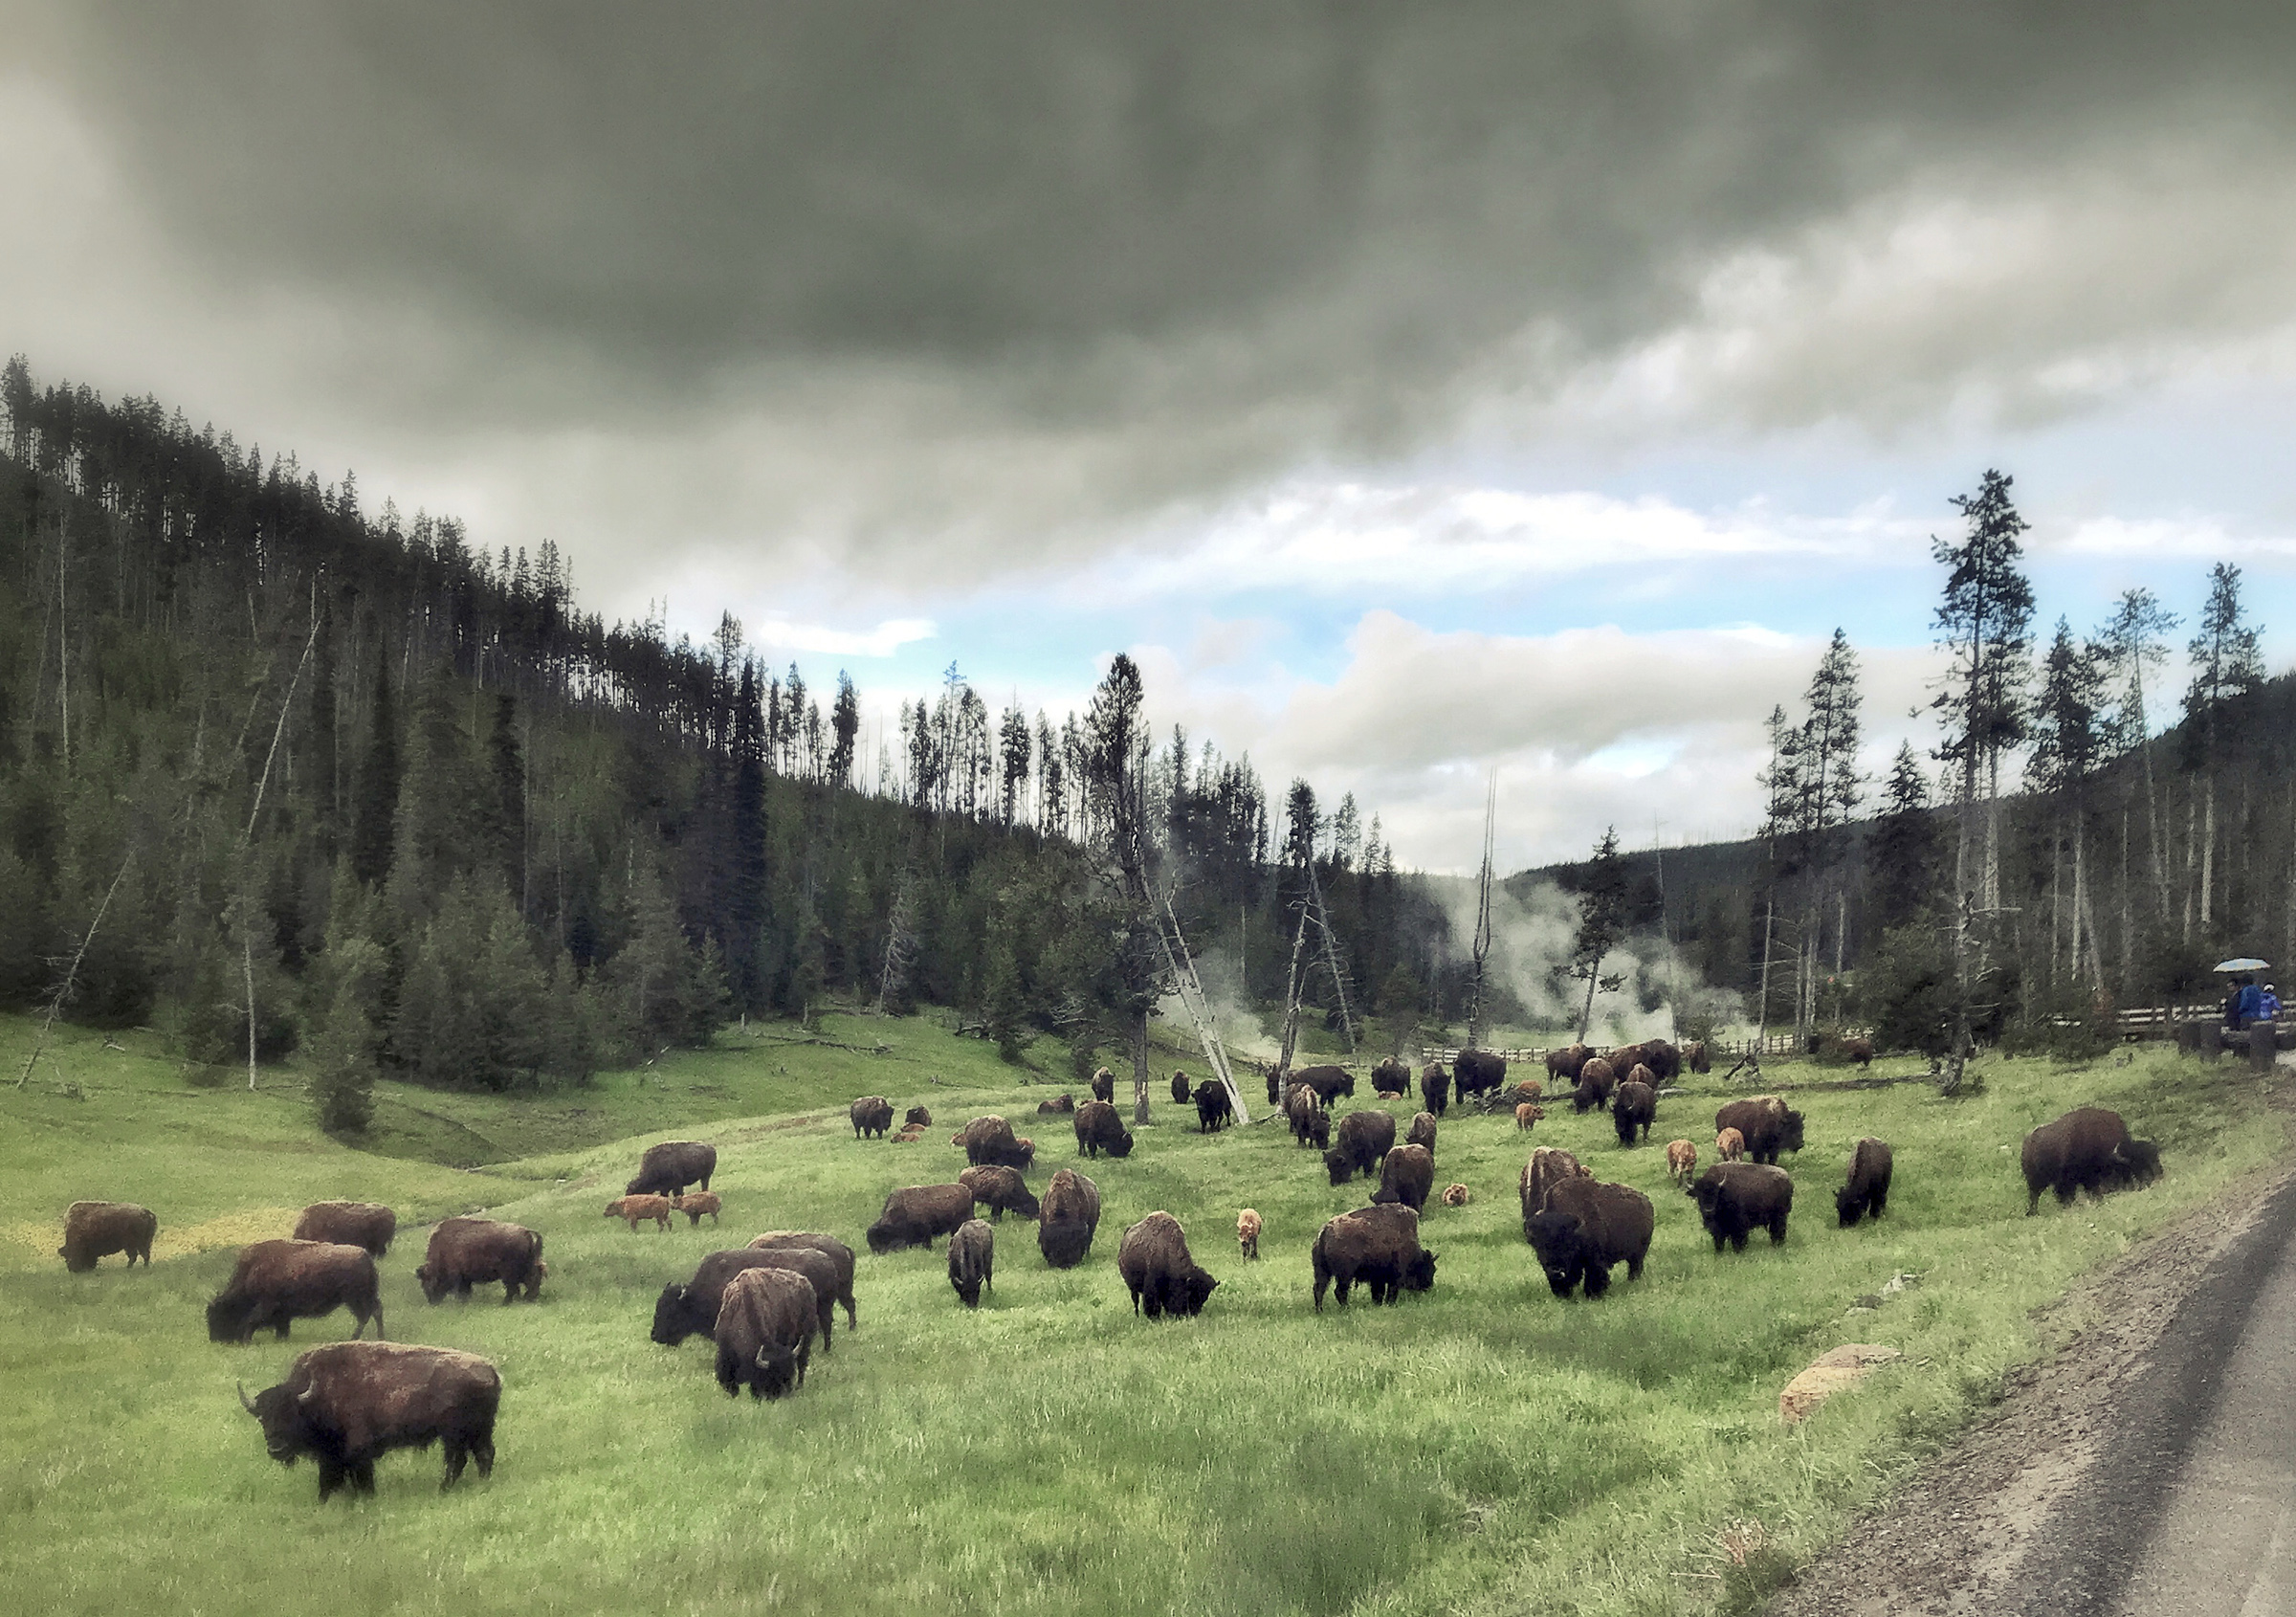 Bisons grazing near Devils Den in Yellowstone National Park in Wyoming, on July 5, 2018.